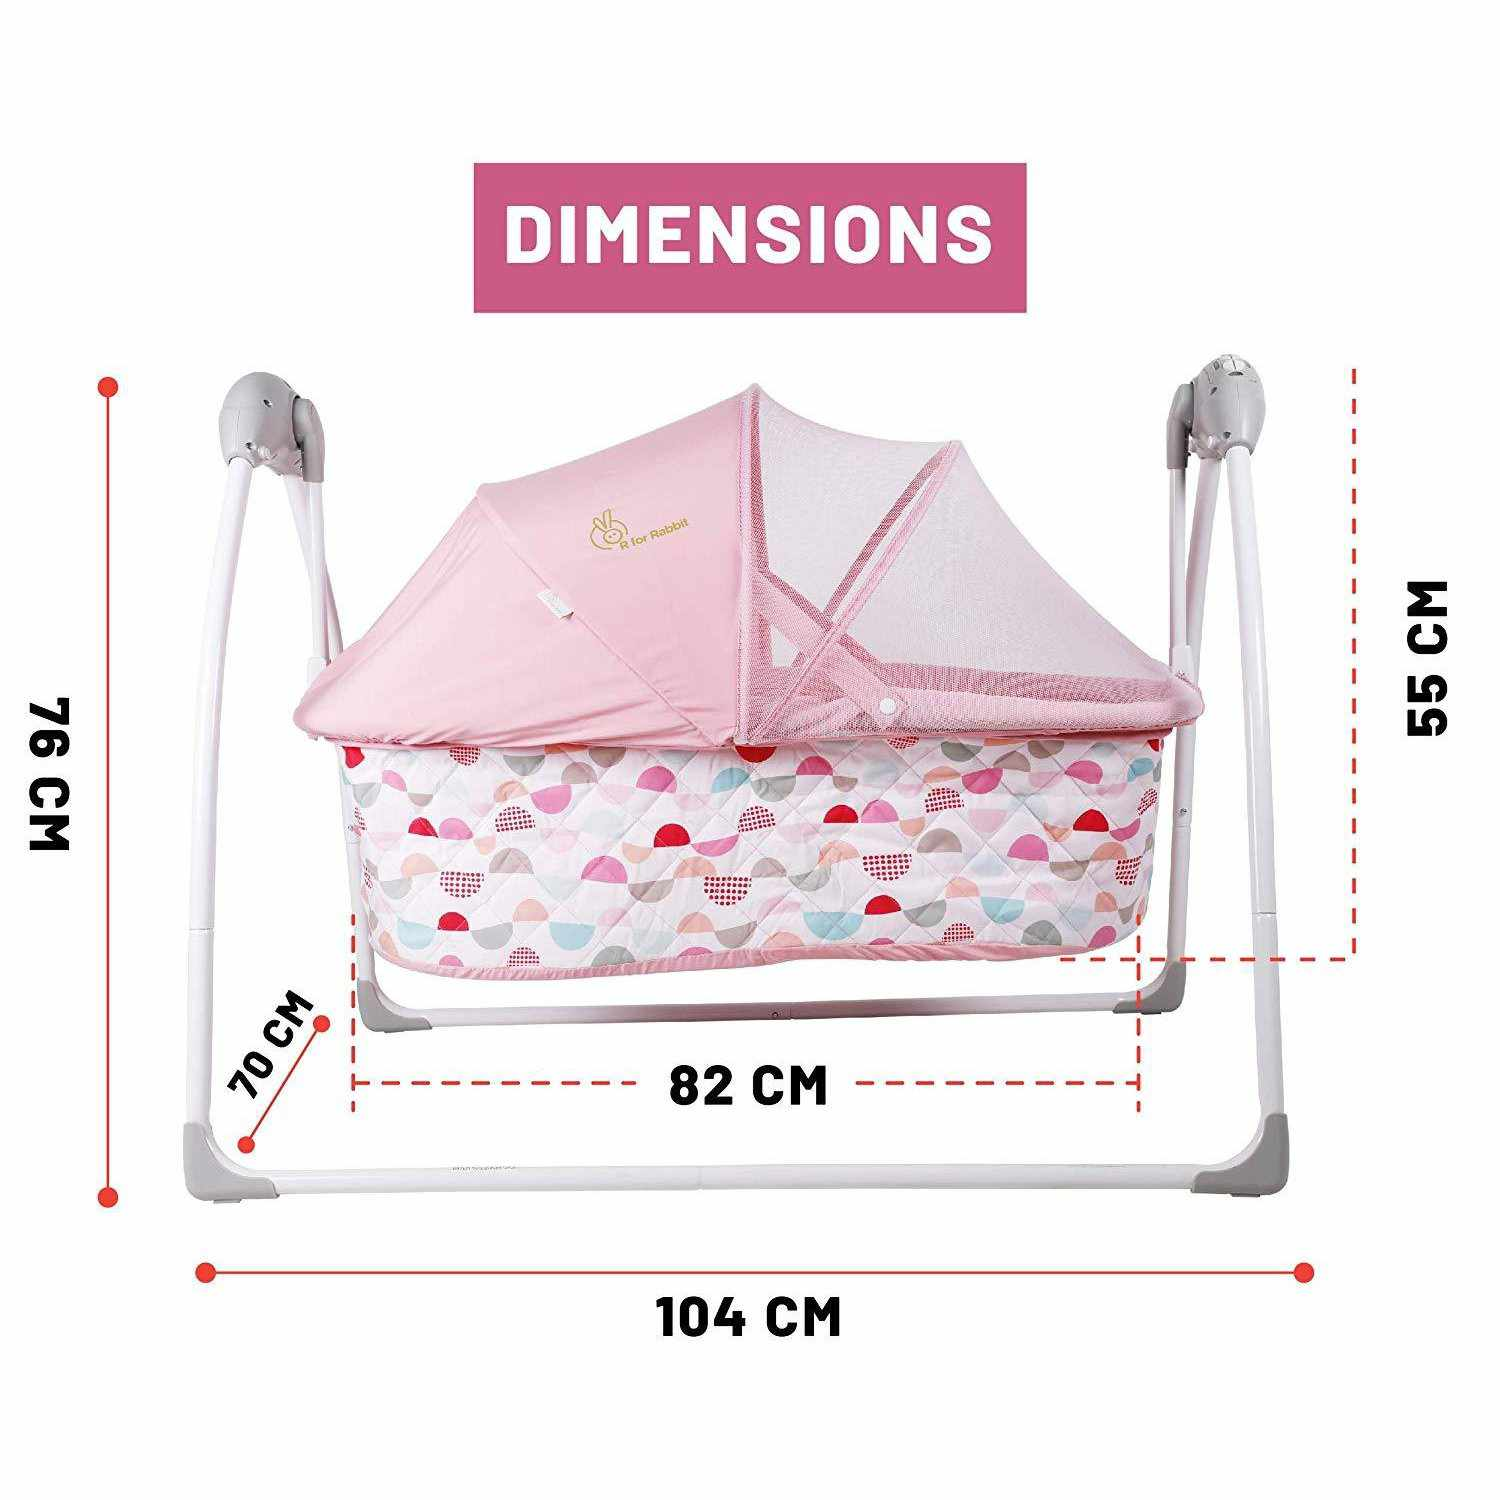 Baby Cradle Dimensions R For Rabbit Lullabies The Auto Swing Baby Cradle